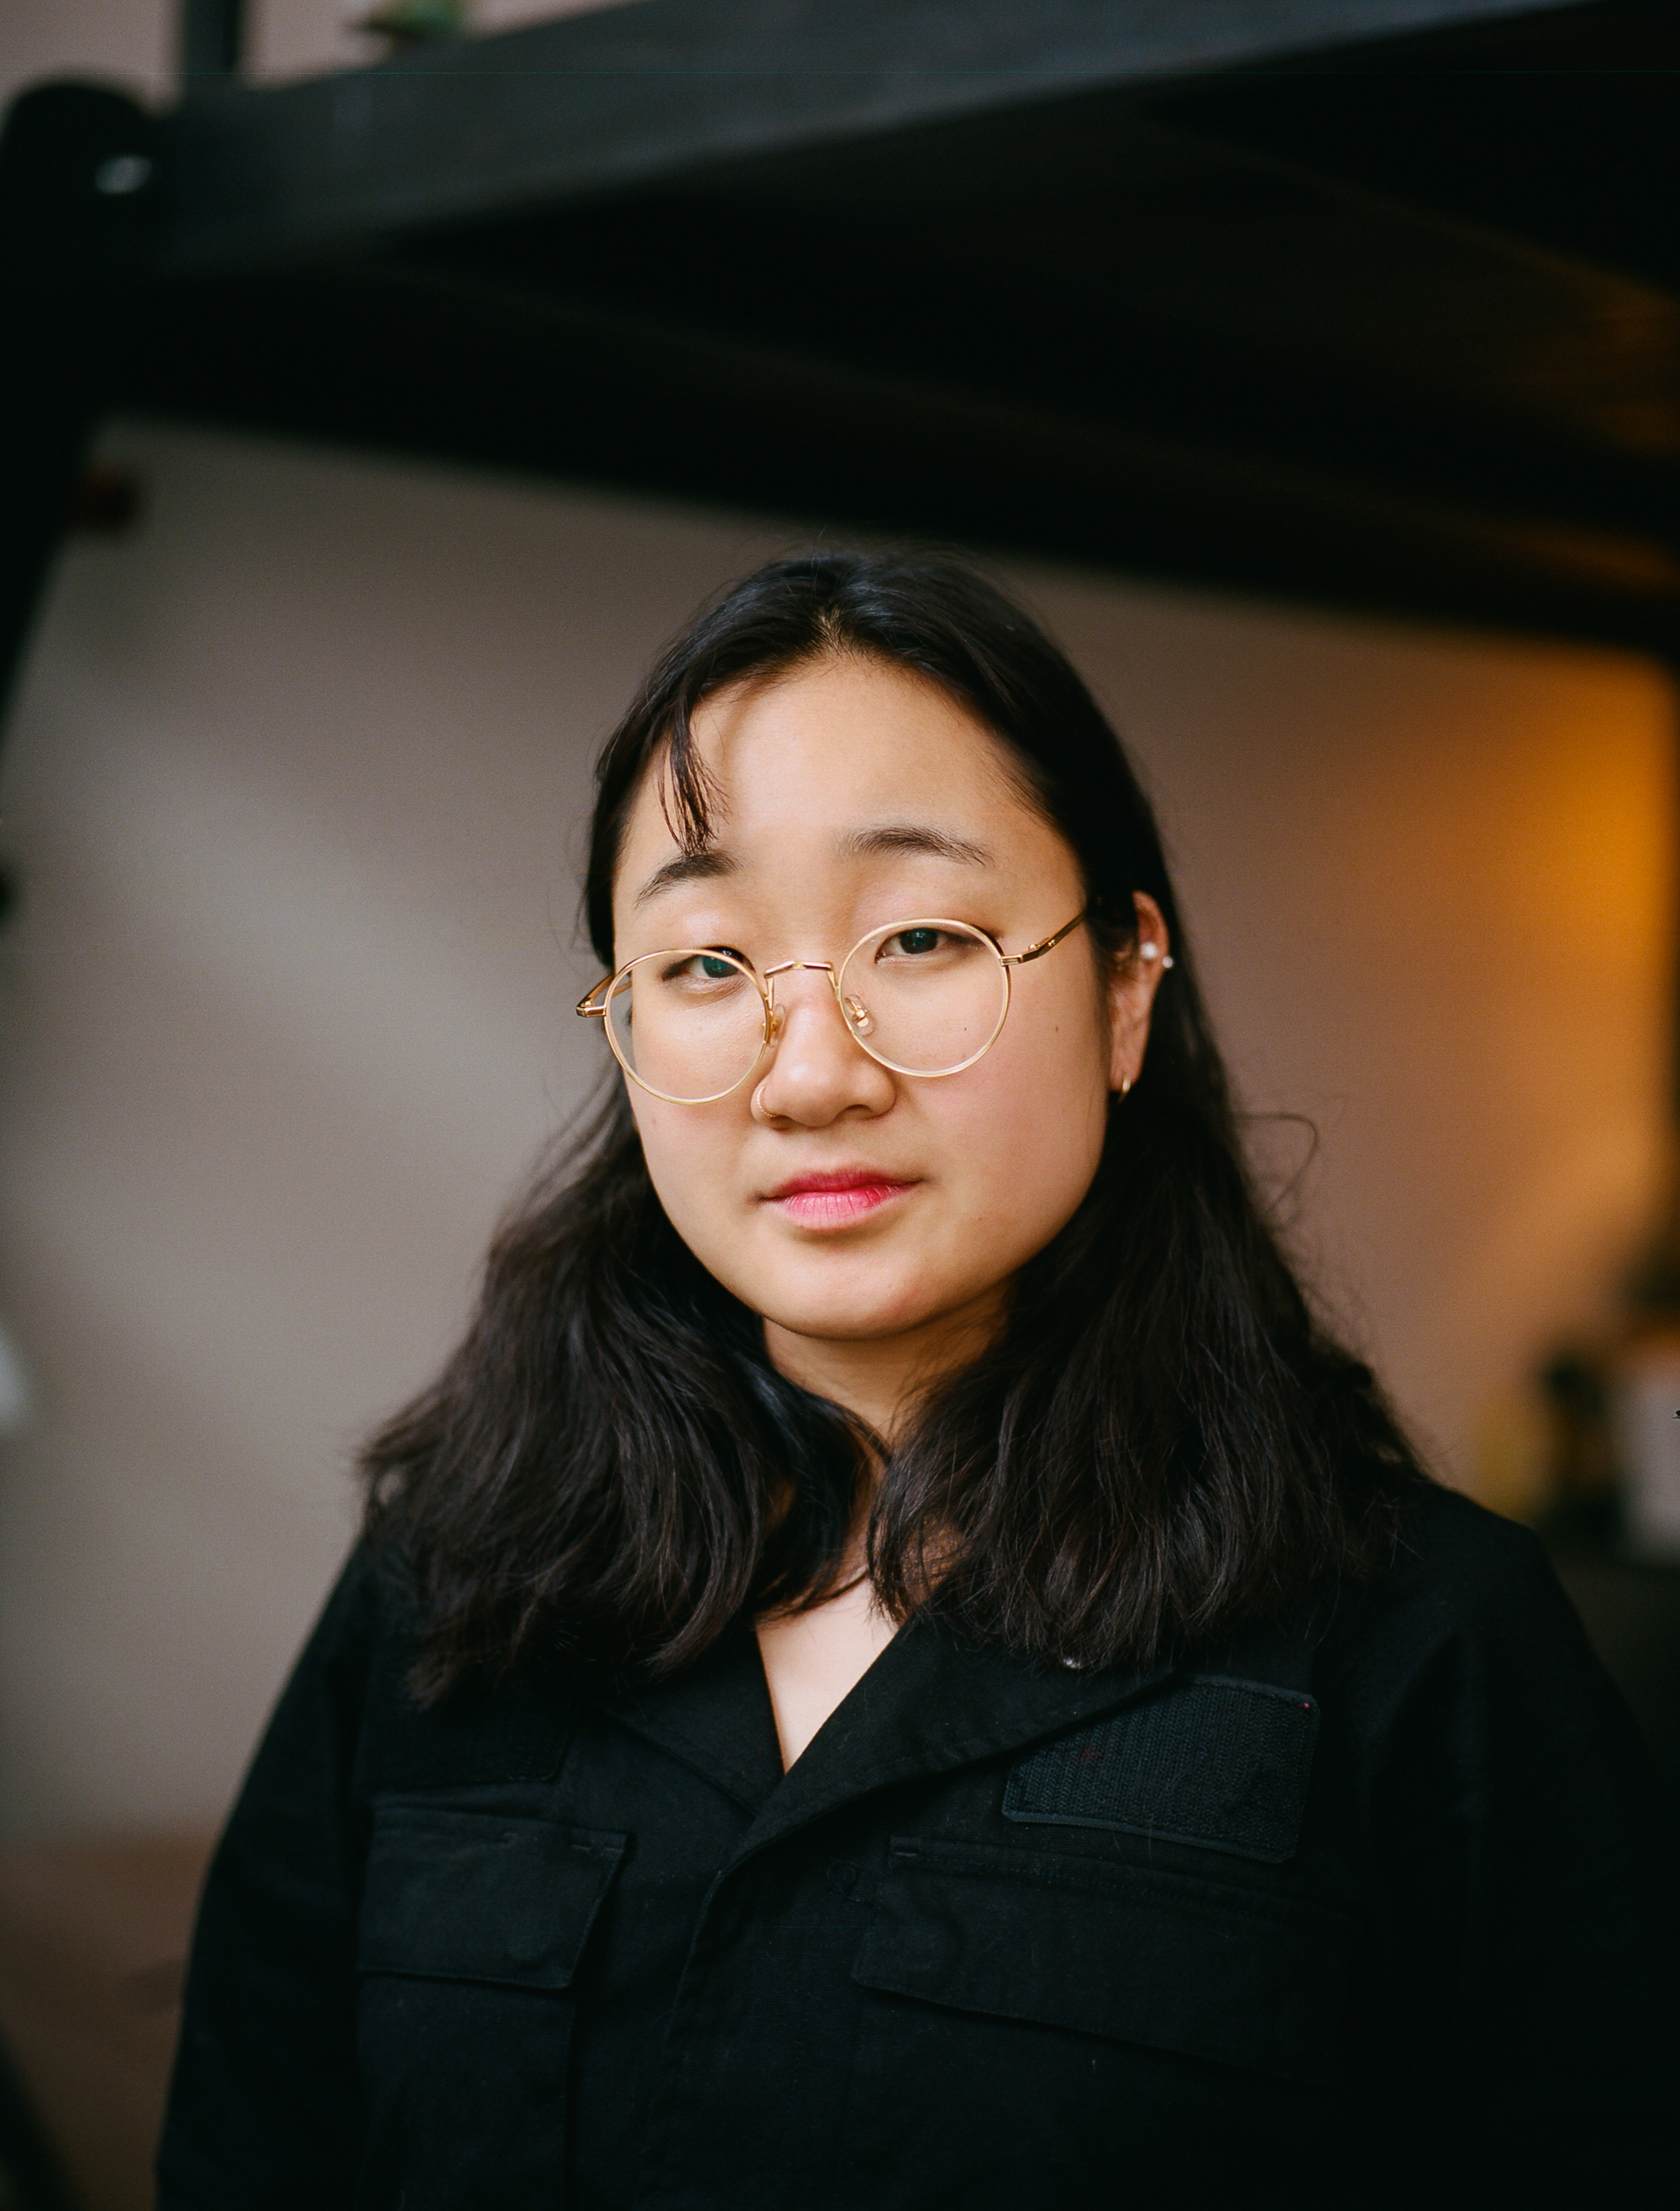 House Door Yaeji A Visual Artist And House Musician Finally Finds A